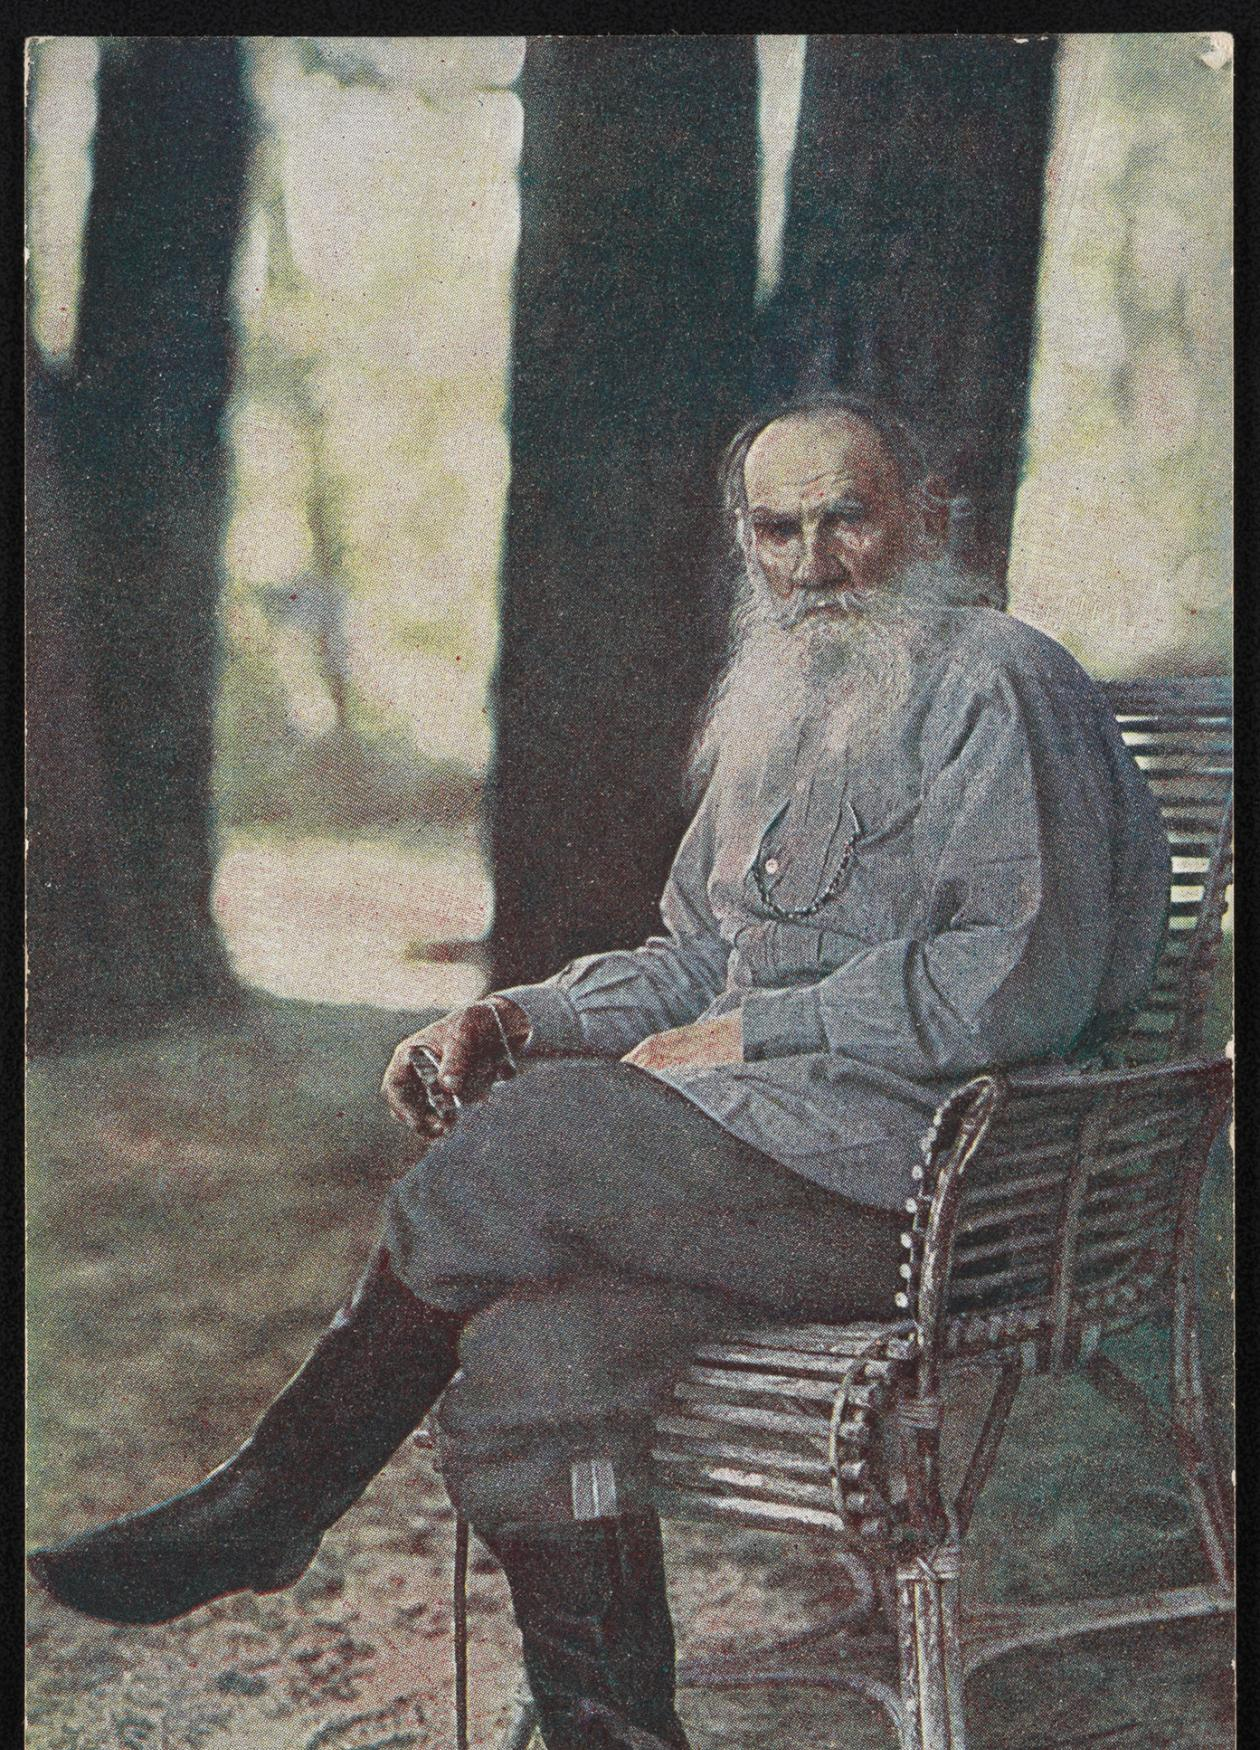 Tolstoy in a blue shirt and boots, long white beard, sitting under trees on a wood bench